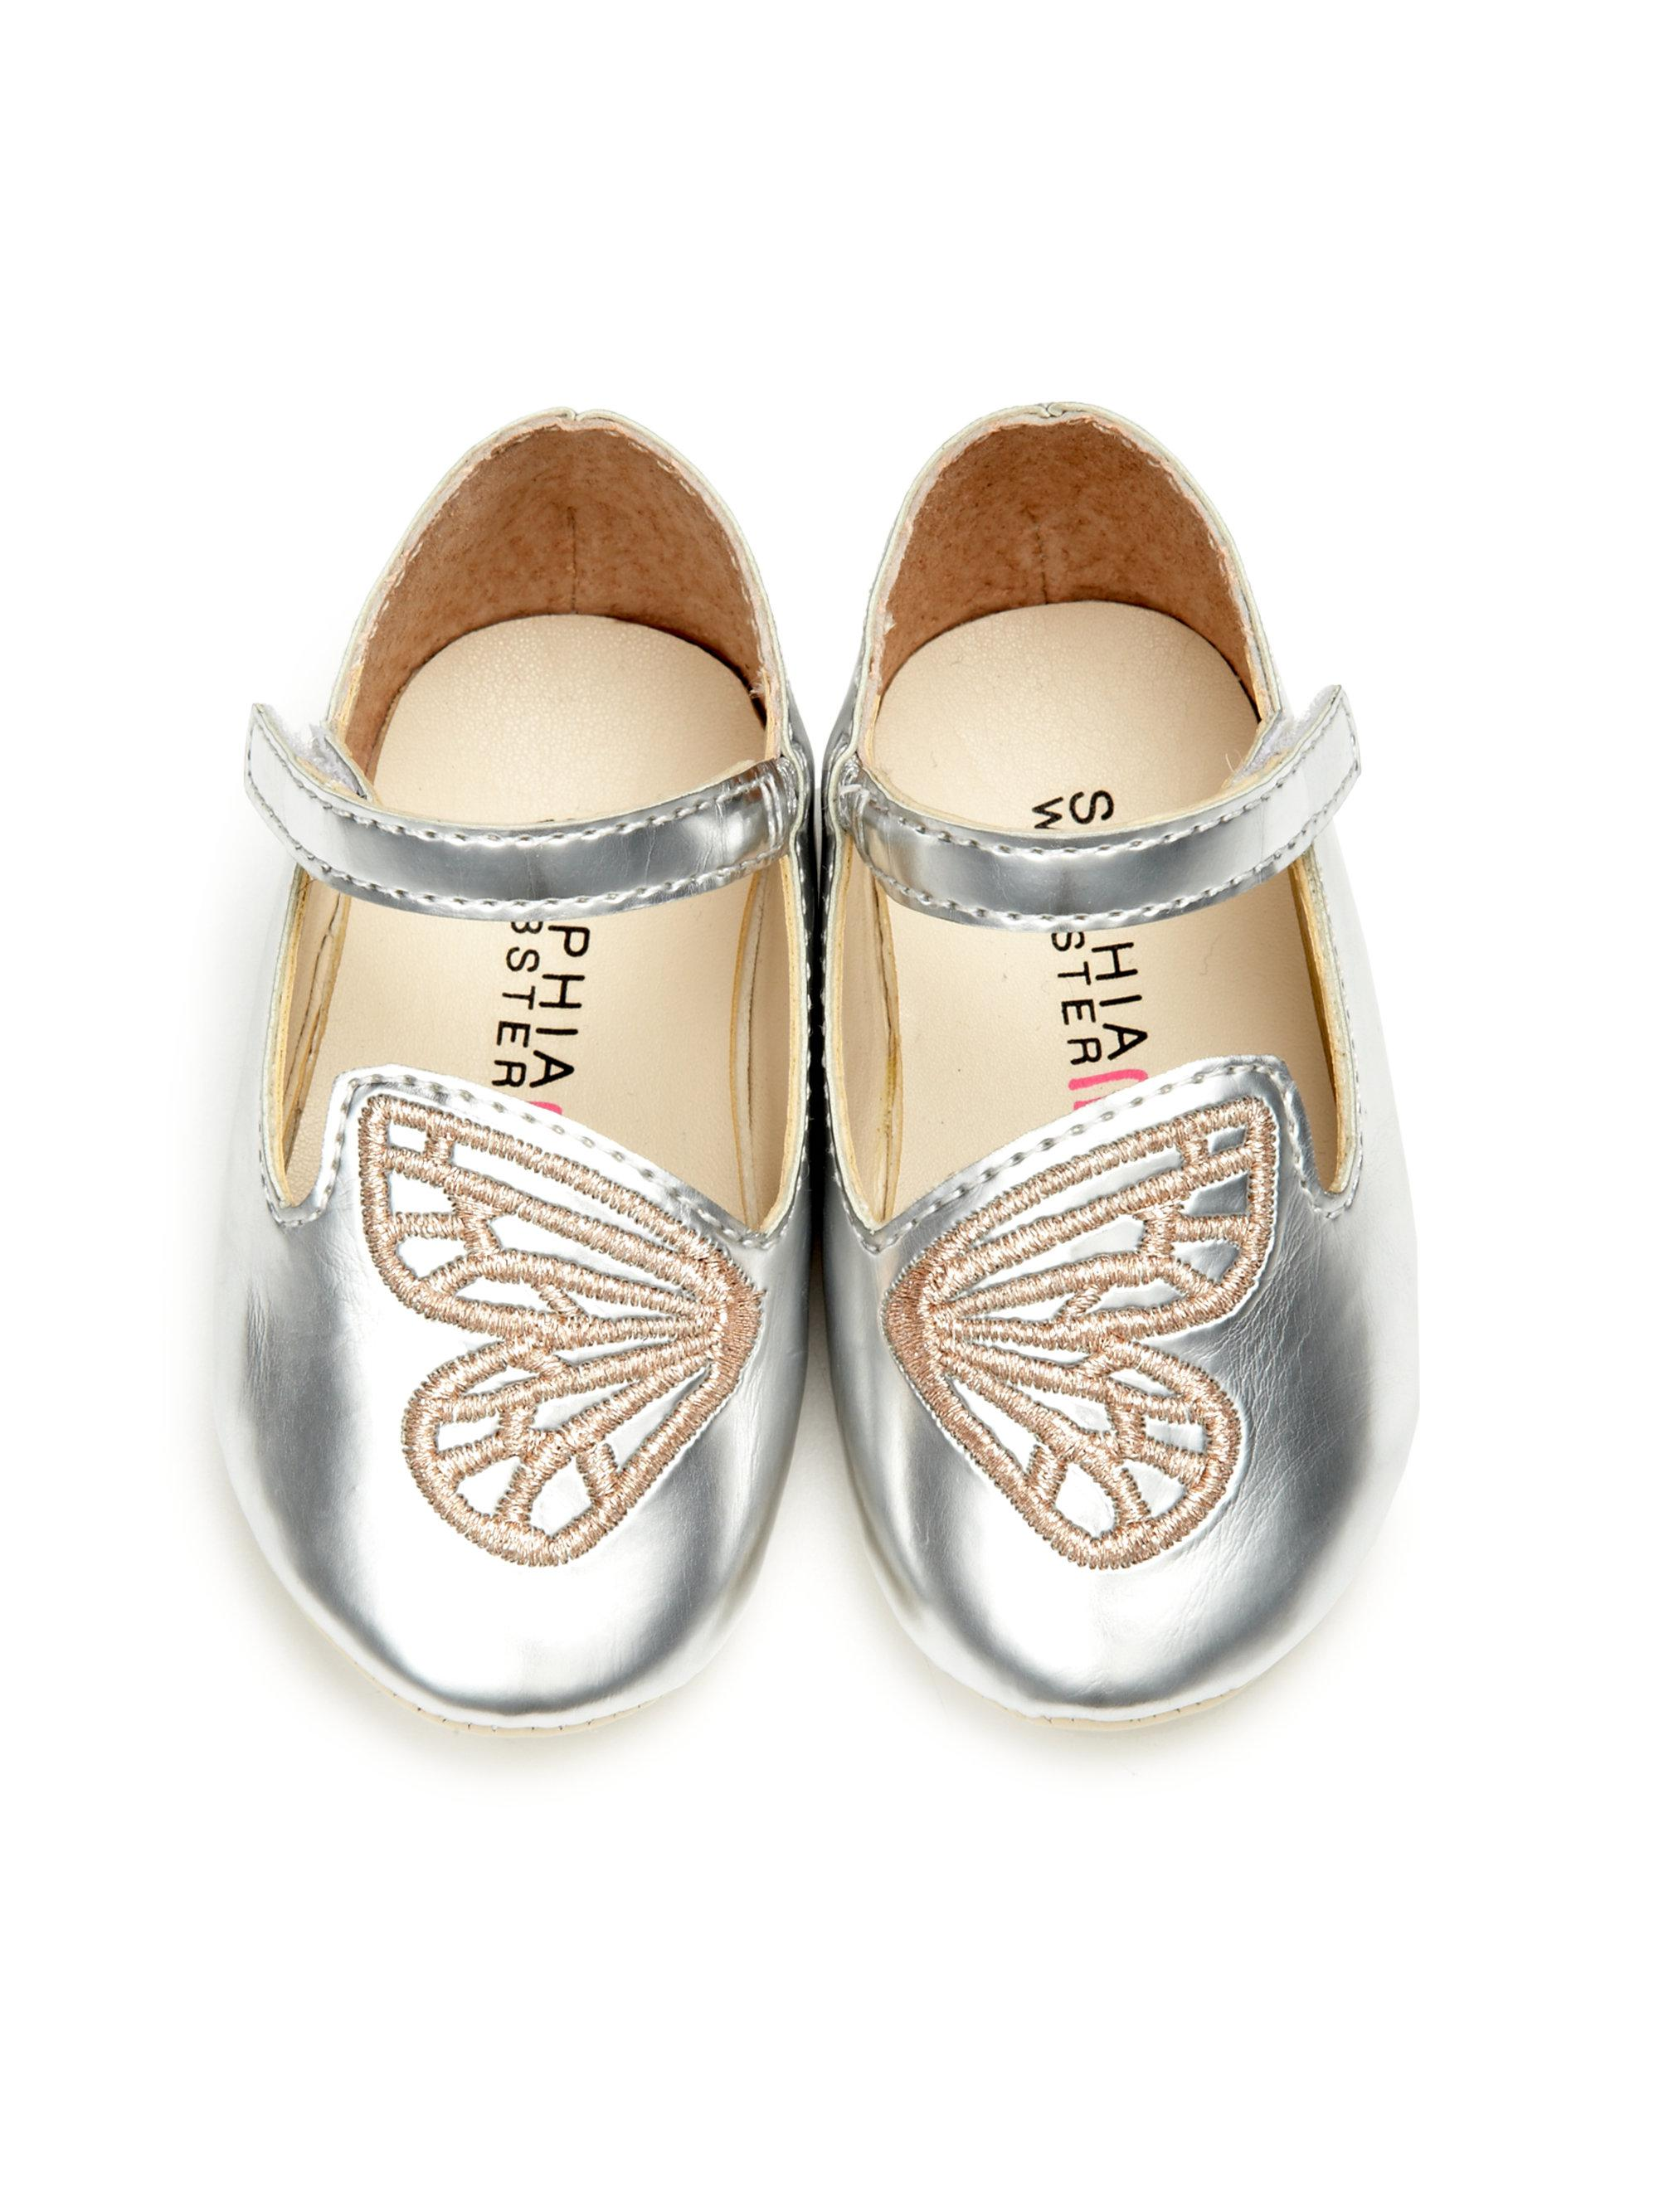 b4bc03a55fd6 Sophia Webster Baby s Bibi Mini Butterfly Metallic Leather Mary ...